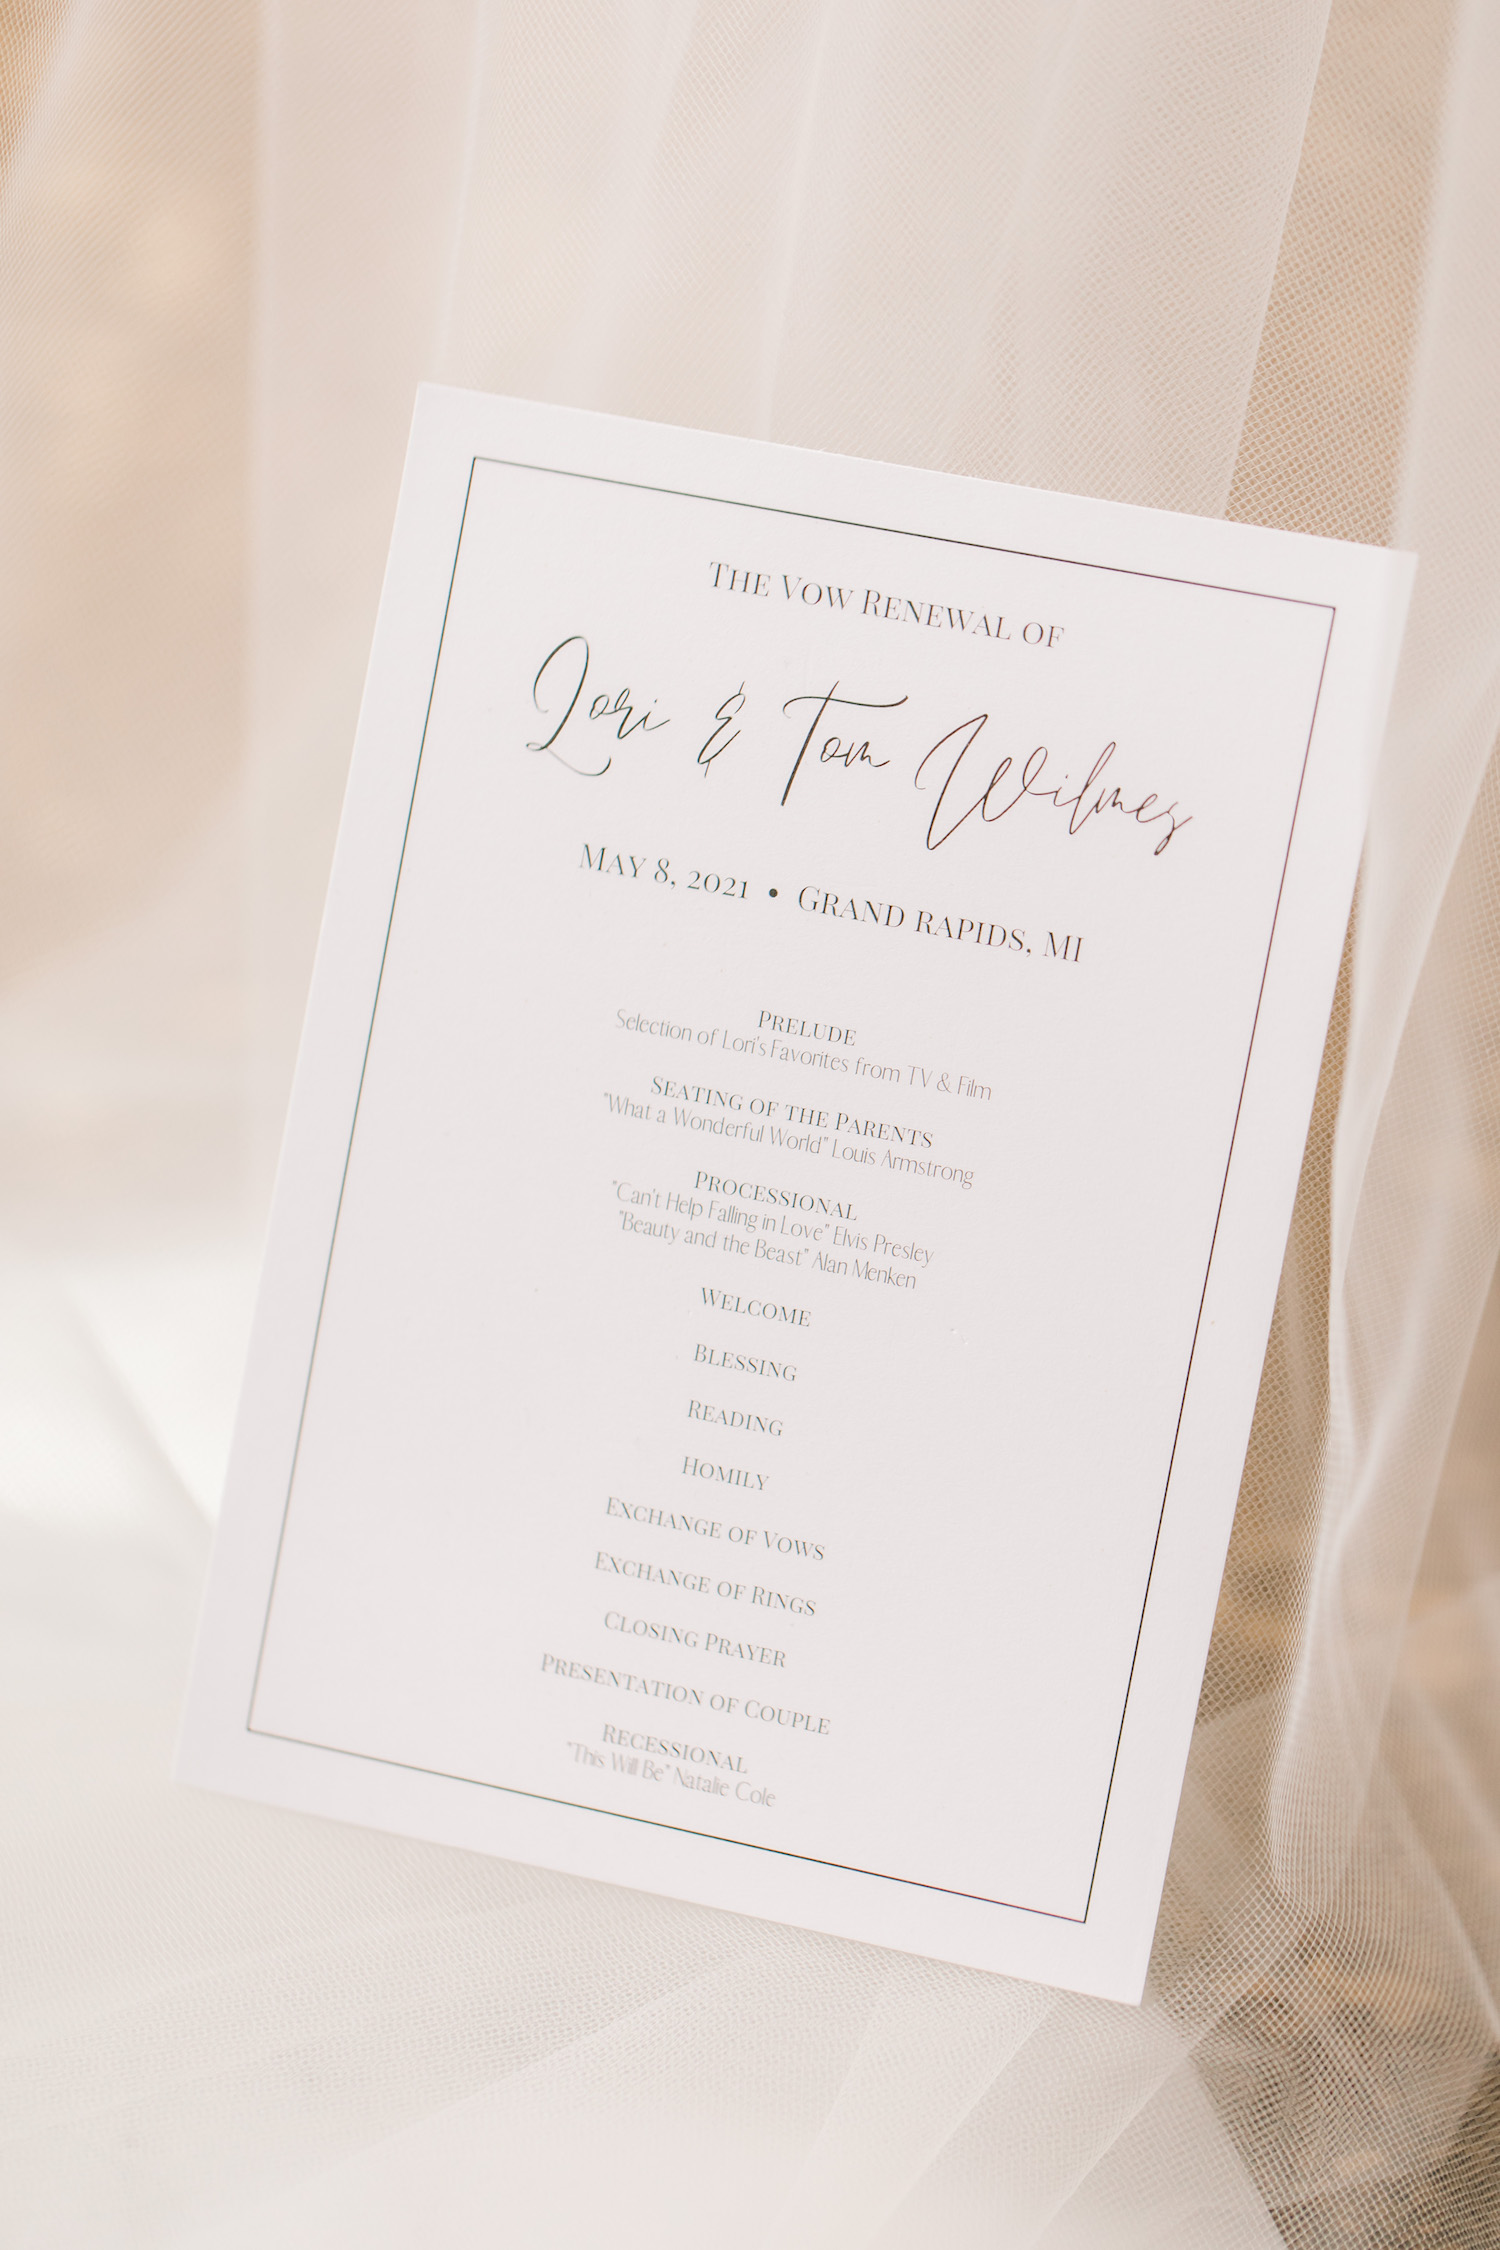 Vow renewal stationary